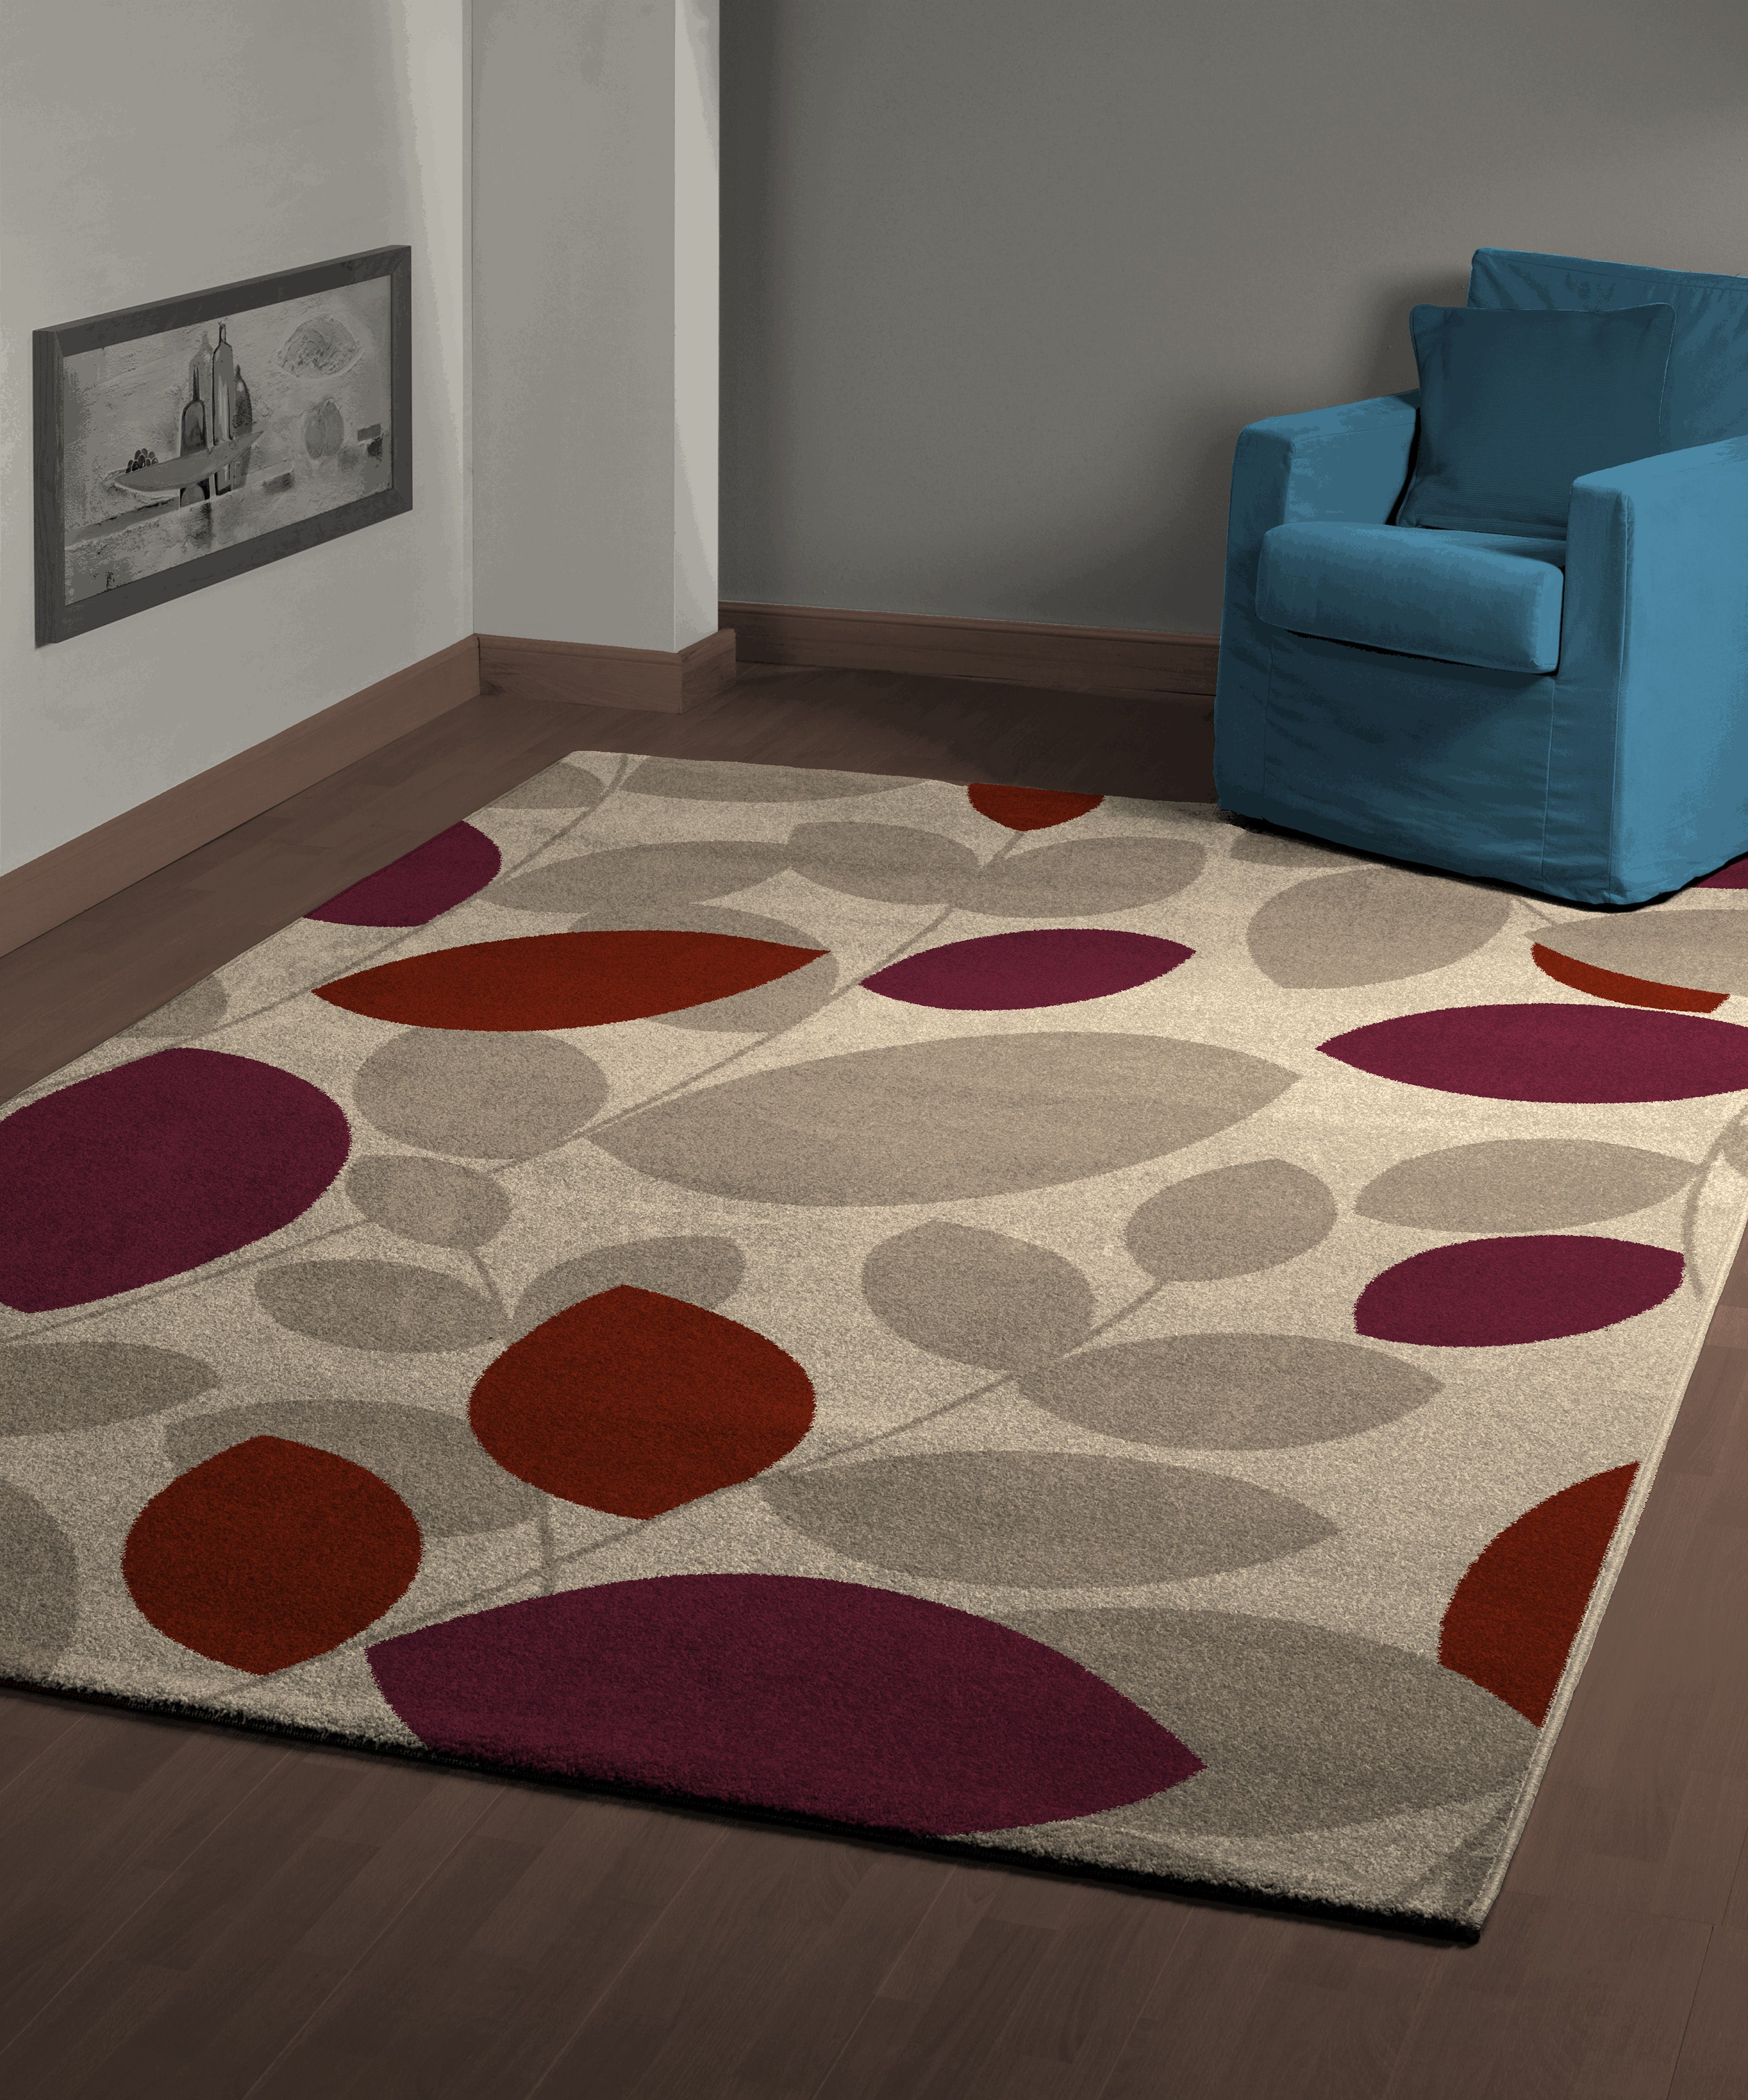 Purple And Tan Living Room  Google Search  New House Ideas Captivating Carpet Designs For Living Room Design Decoration